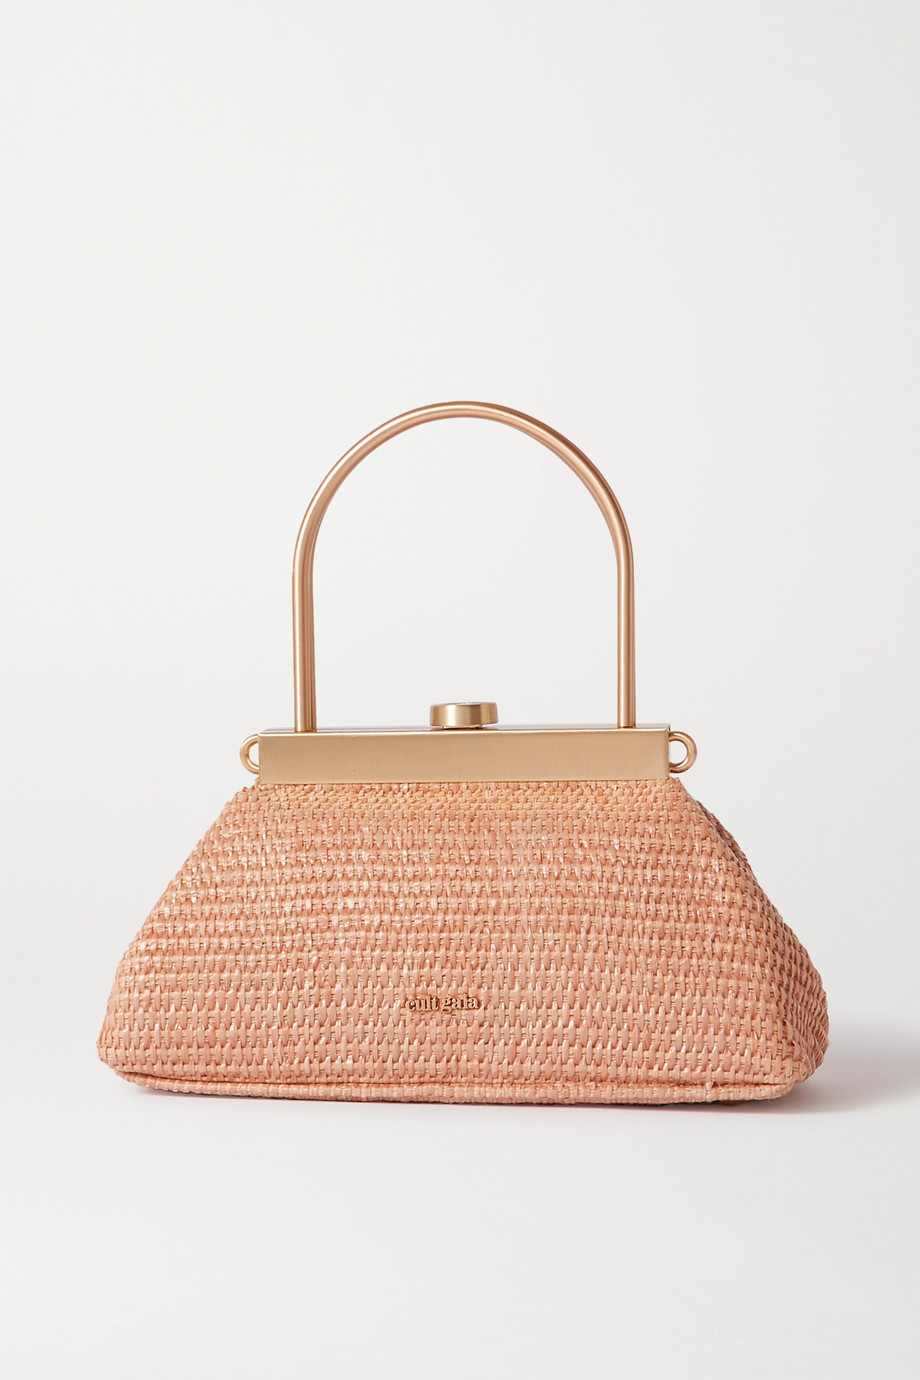 Cult Gaia Estelle mini leather-trimmed woven straw tote